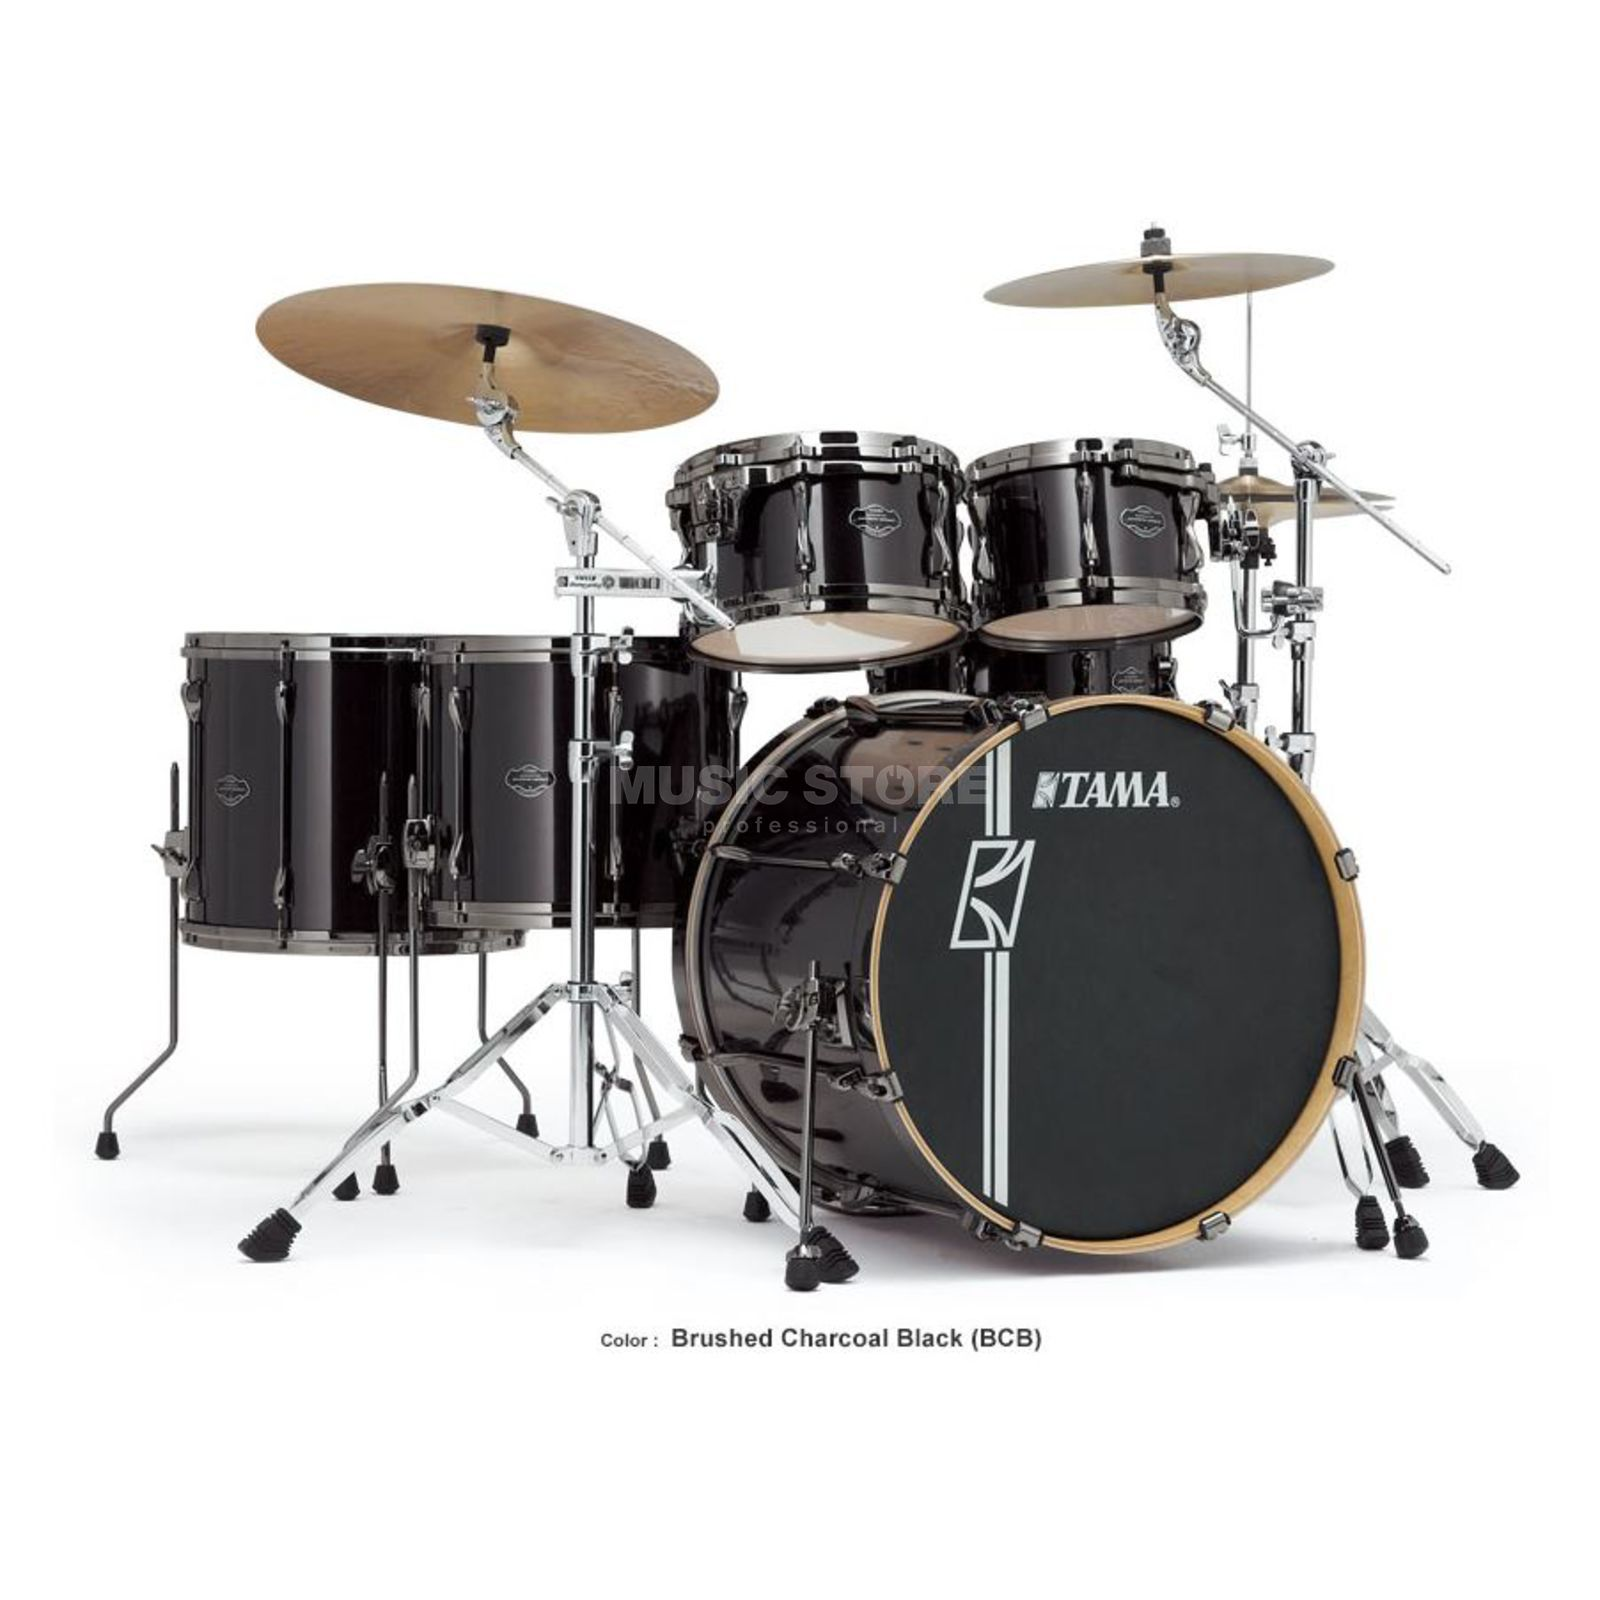 Tama Superstar HD Maple MK52HZBN, Brushed Charcoal Black, BCB Image du produit